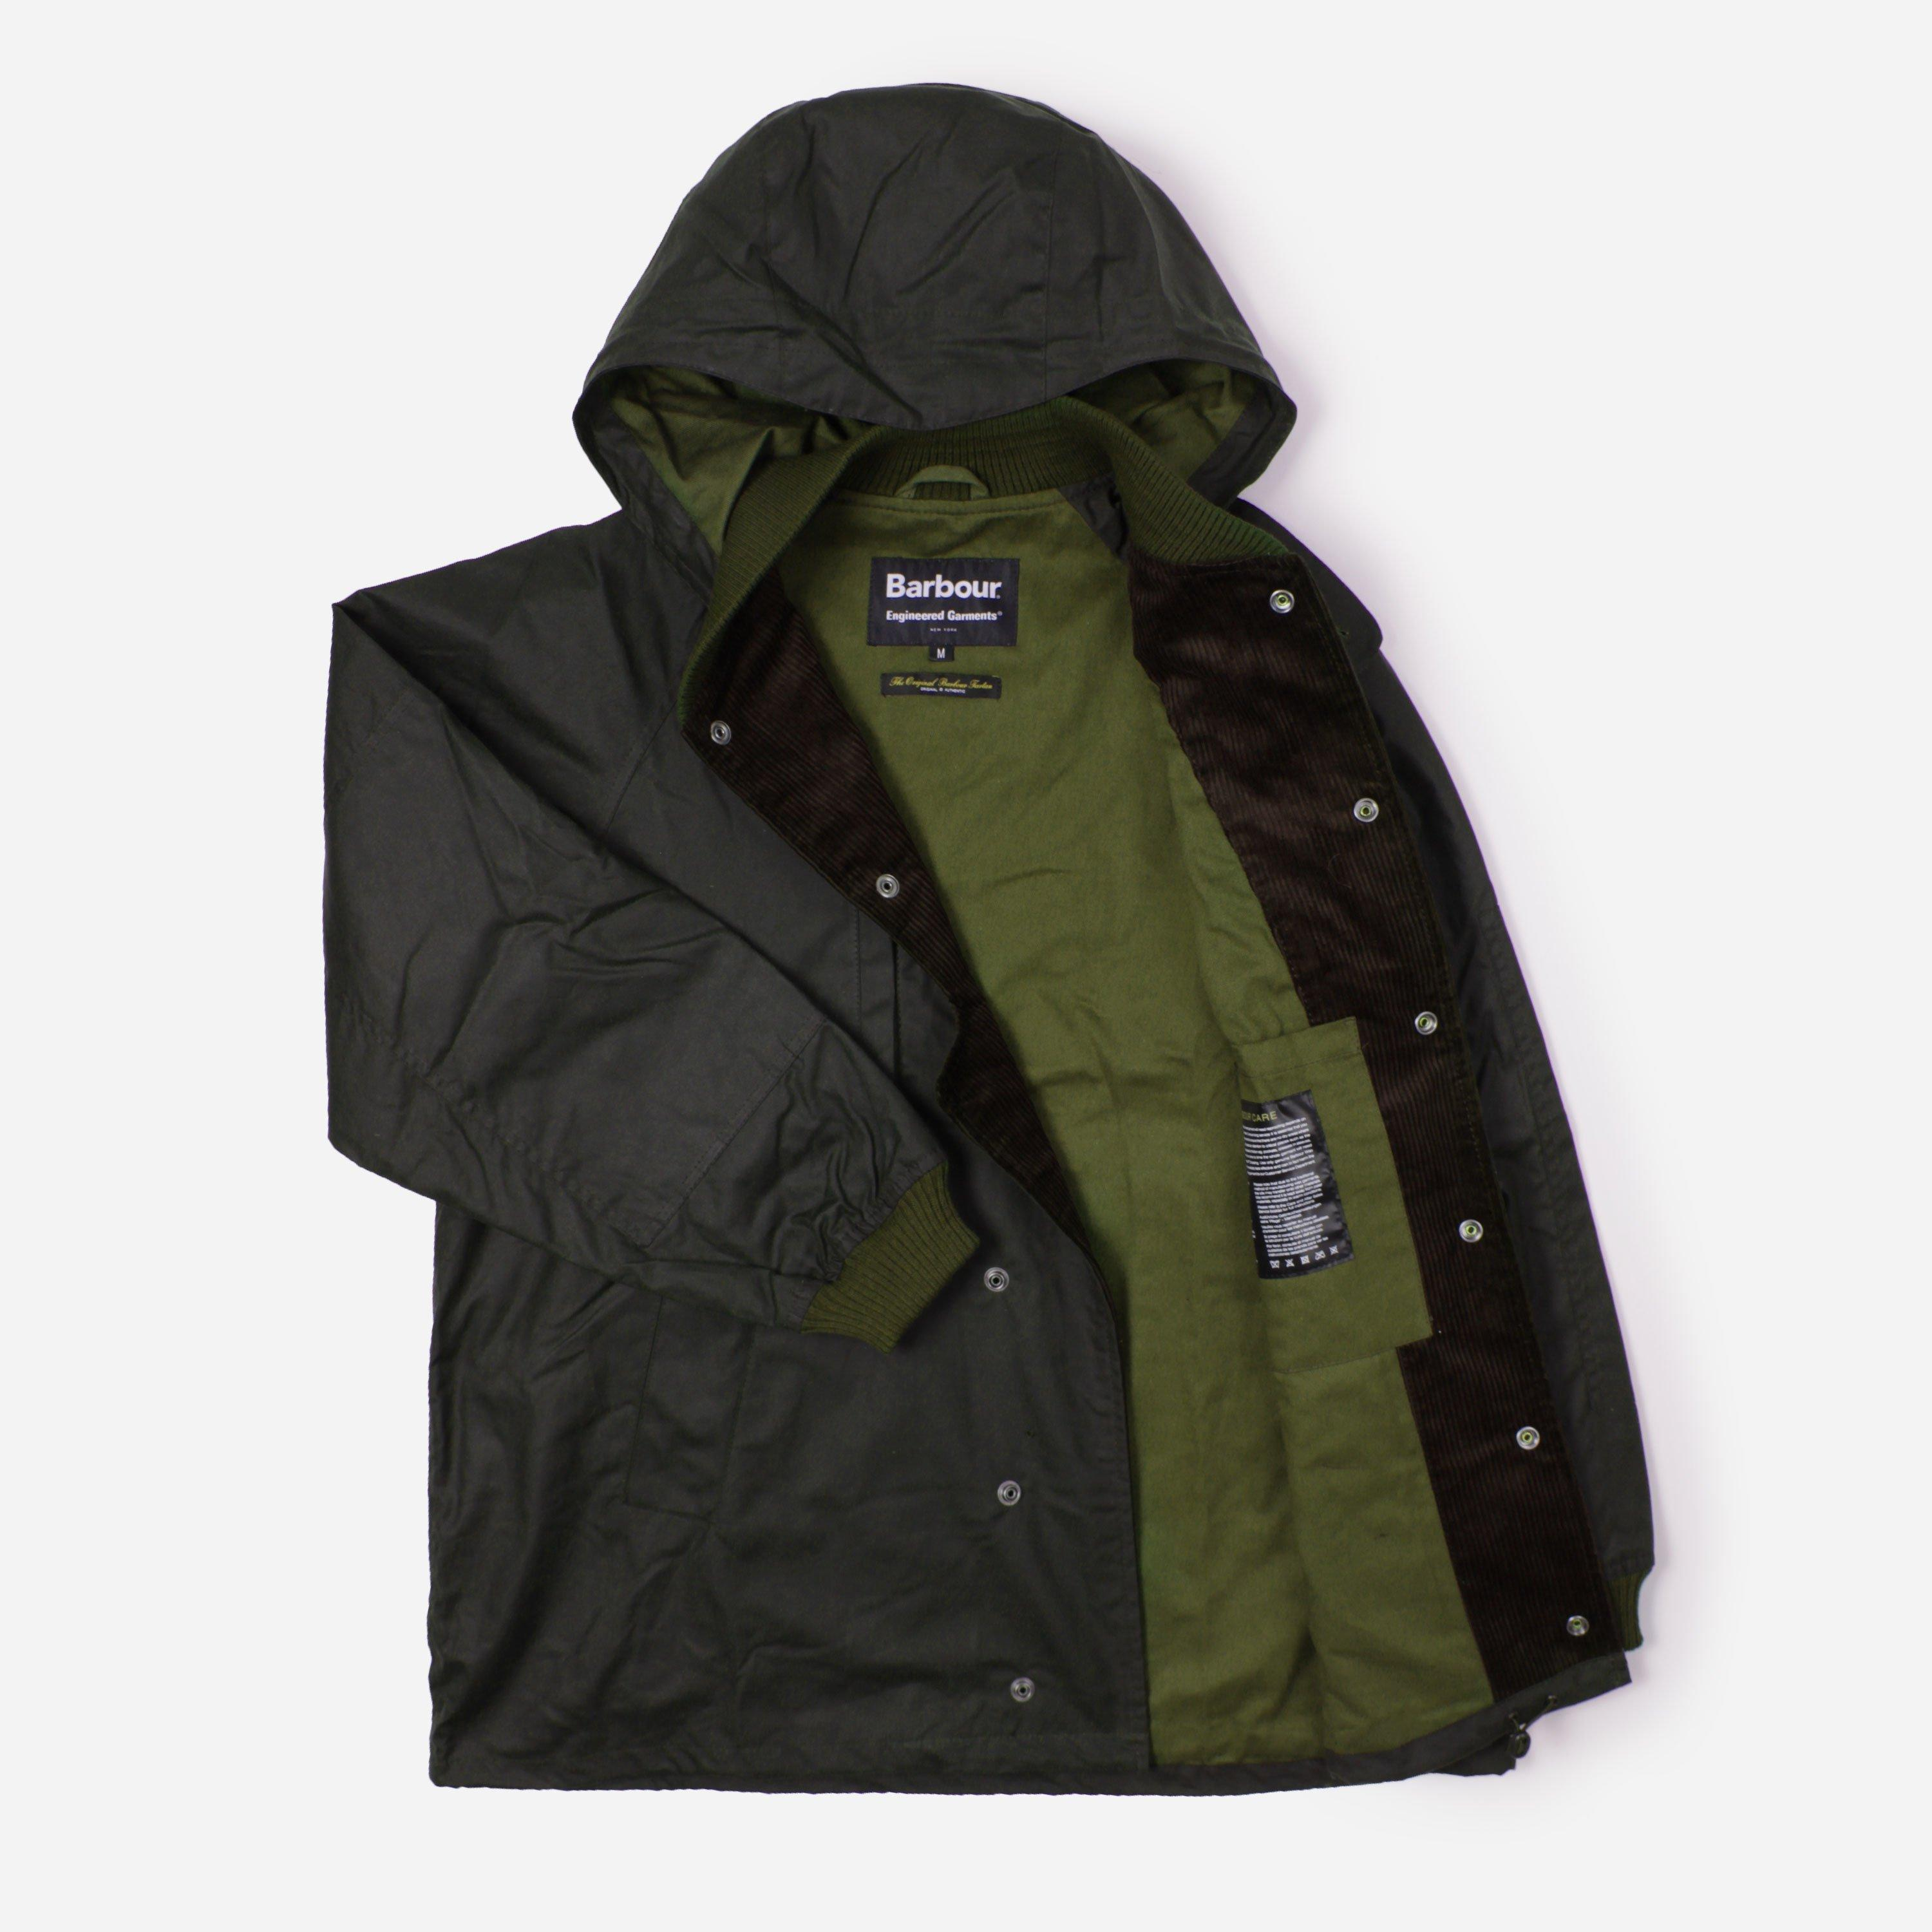 green envelope clothing zipper top engineered garments highland parka